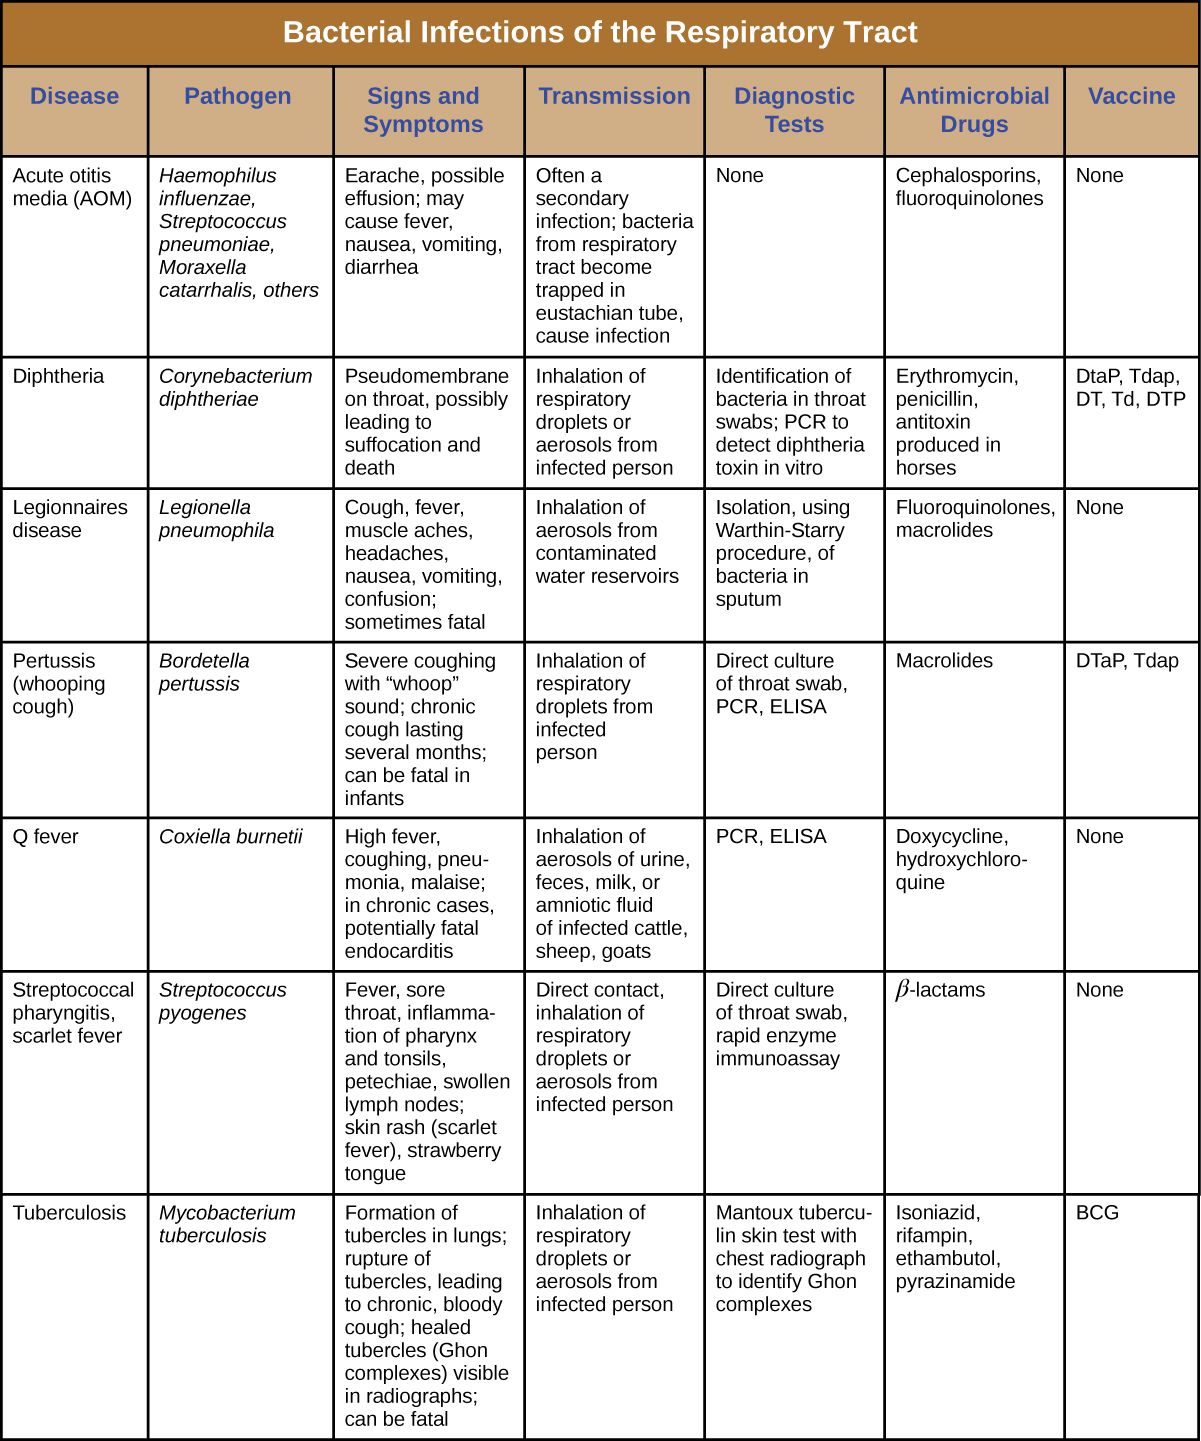 "Table titled: Bacterial Infections of the Respiratory Tract. Columns: Disease, Pathogen, Signs and Symptoms, Transmission, Diagnostic Tests, Antimicrobial Drugs, Vaccine. Acute otitis media (AOM); Haemophilus influenzae, Streptococcus pneumoniae, Moraxella catarrhalis, others;  Earache, possible effusion; may cause fever, nausea, vomiting, diarrhea; Often a secondary infection; bacteria from respiratory tract become trapped in eustachian tube, cause infection; None; Cephalosporins, fluoroquinolones; None. Diphtheria; Corynebacterium diphtheria; Pseudomembrane on throat, possibly leading to suffocation and death; Inhalation of respiratory droplets or aerosols from infected person ; Identification of bacteria in throat swabs; PCR to detect diphtheria toxin in vitro; Erythromycin, penicillin, antitoxin produced in horses; DtaP, Tdap, DT, Td, DTP. Legionnaires disease; Legionella pneumophila; Cough, fever, muscle aches, headaches, nausea, vomiting, confusion; sometimes fatal; Inhalation of aerosols from contaminated water reservoirs; Isolation, using Warthin-Starry procedure, of bacteria in sputum; Fluoroquinolones, macrolides; None. Pertussis (whooping cough); Bordetella pertussis; Severe coughing with ""whoop"" sound; chronic cough lasting several months; can be fatal in infants; Inhalation of respiratory droplets from infected person; Direct culture of throat swab, PCR, ELISA Macrolides; DTaP, Tdap. Q fever; Coxiella burnetii; High fever, coughing, pneumonia, malaise; in chronic cases, potentially fatal endocarditis; Inhalation of aerosols of urine, feces, milk, or amniotic fluid of infected cattle, sheep, goats; PCR, ELISA; Doxycycline, hydroxychloroquine; None. Streptococcal pharyngitis, scarlet fever; Streptococcus pyogenes; Fever, sore throat, inflammation of pharynx and tonsils, petechiae, swollen lymph nodes; skin rash (scarlet fever), strawberry tongue; Direct contact, inhalation of respiratory droplets or aerosols from infected person Direct culture of throat swab, rapid enzyme immunoassay; β-lactams; None. Tuberculosis; Mycobacterium tuberculosis; Formation of tubercles in lungs; rupture of tubercles, leading to chronic, bloody cough; healed tubercles (Ghon complexes) visible in radiographs; can be fatal; Inhalation of respiratory droplets or aerosols from infected person Mantoux tuberculin skin test with chest radiograph to identify Ghon complexes; Isoniazid, rifampin, ethambutol, pyrazinamide; BCG."